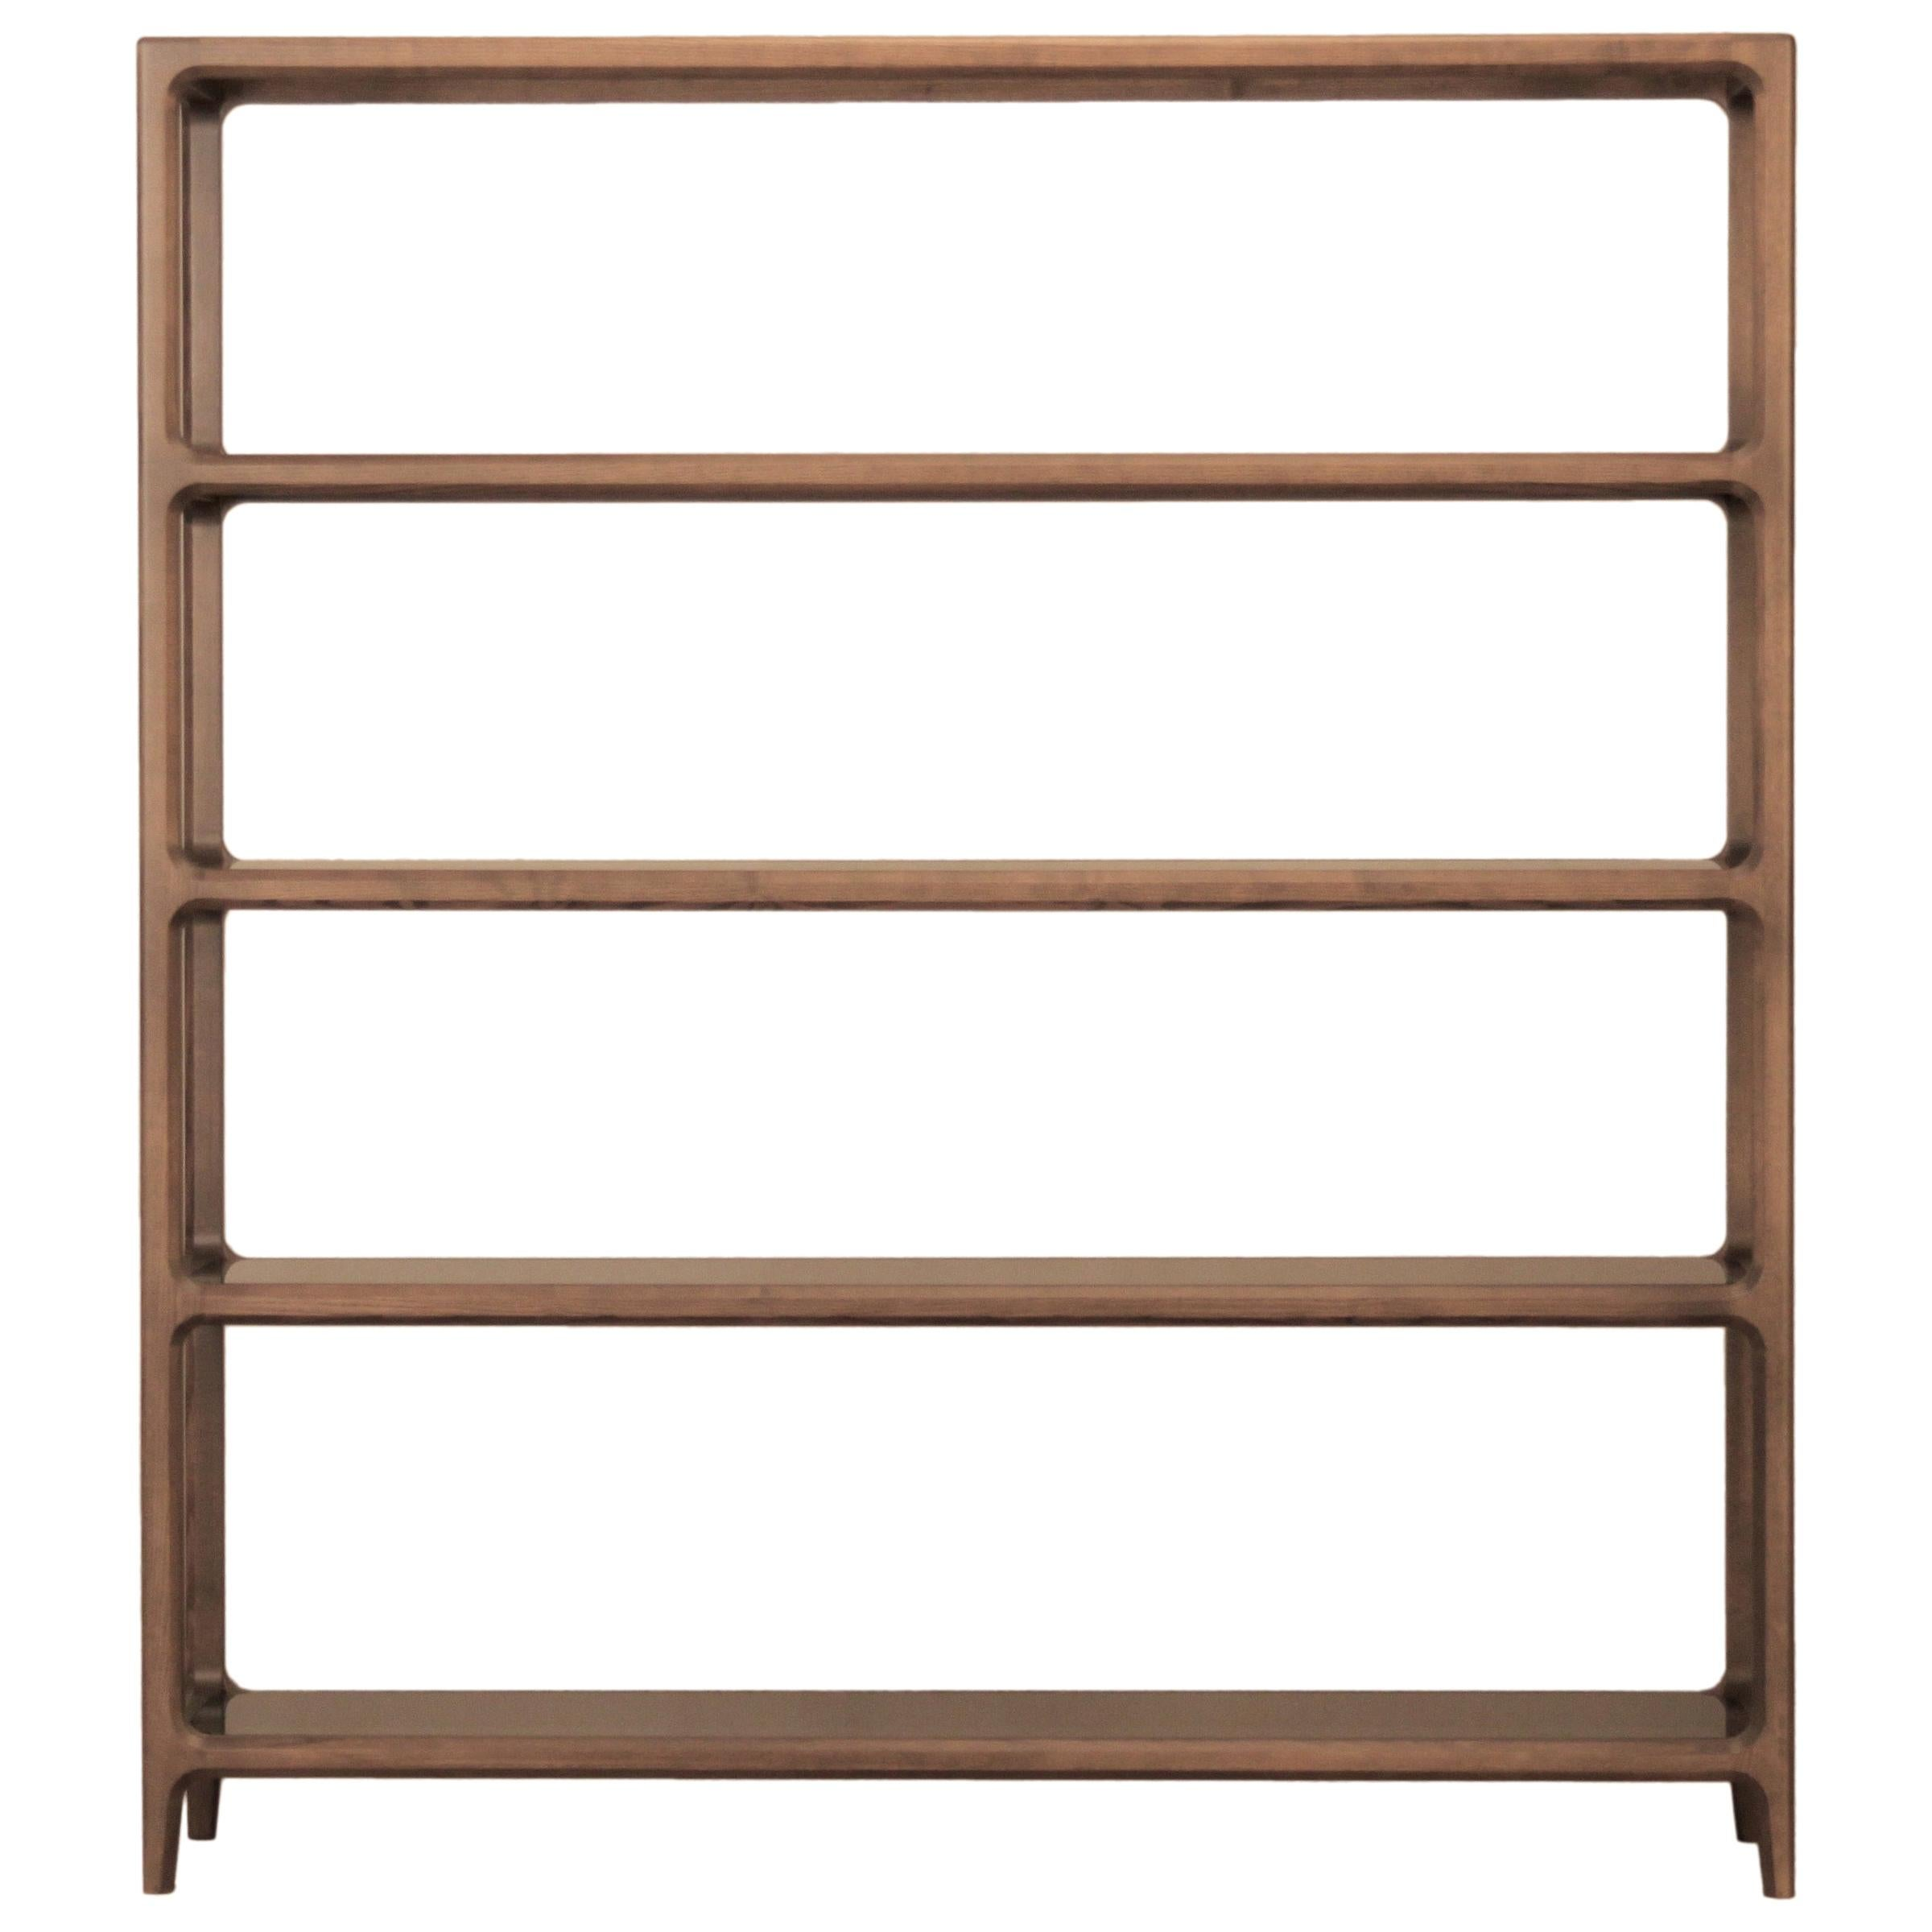 Solid Ashwood Open Bookcase with Smoked Glass Shelves